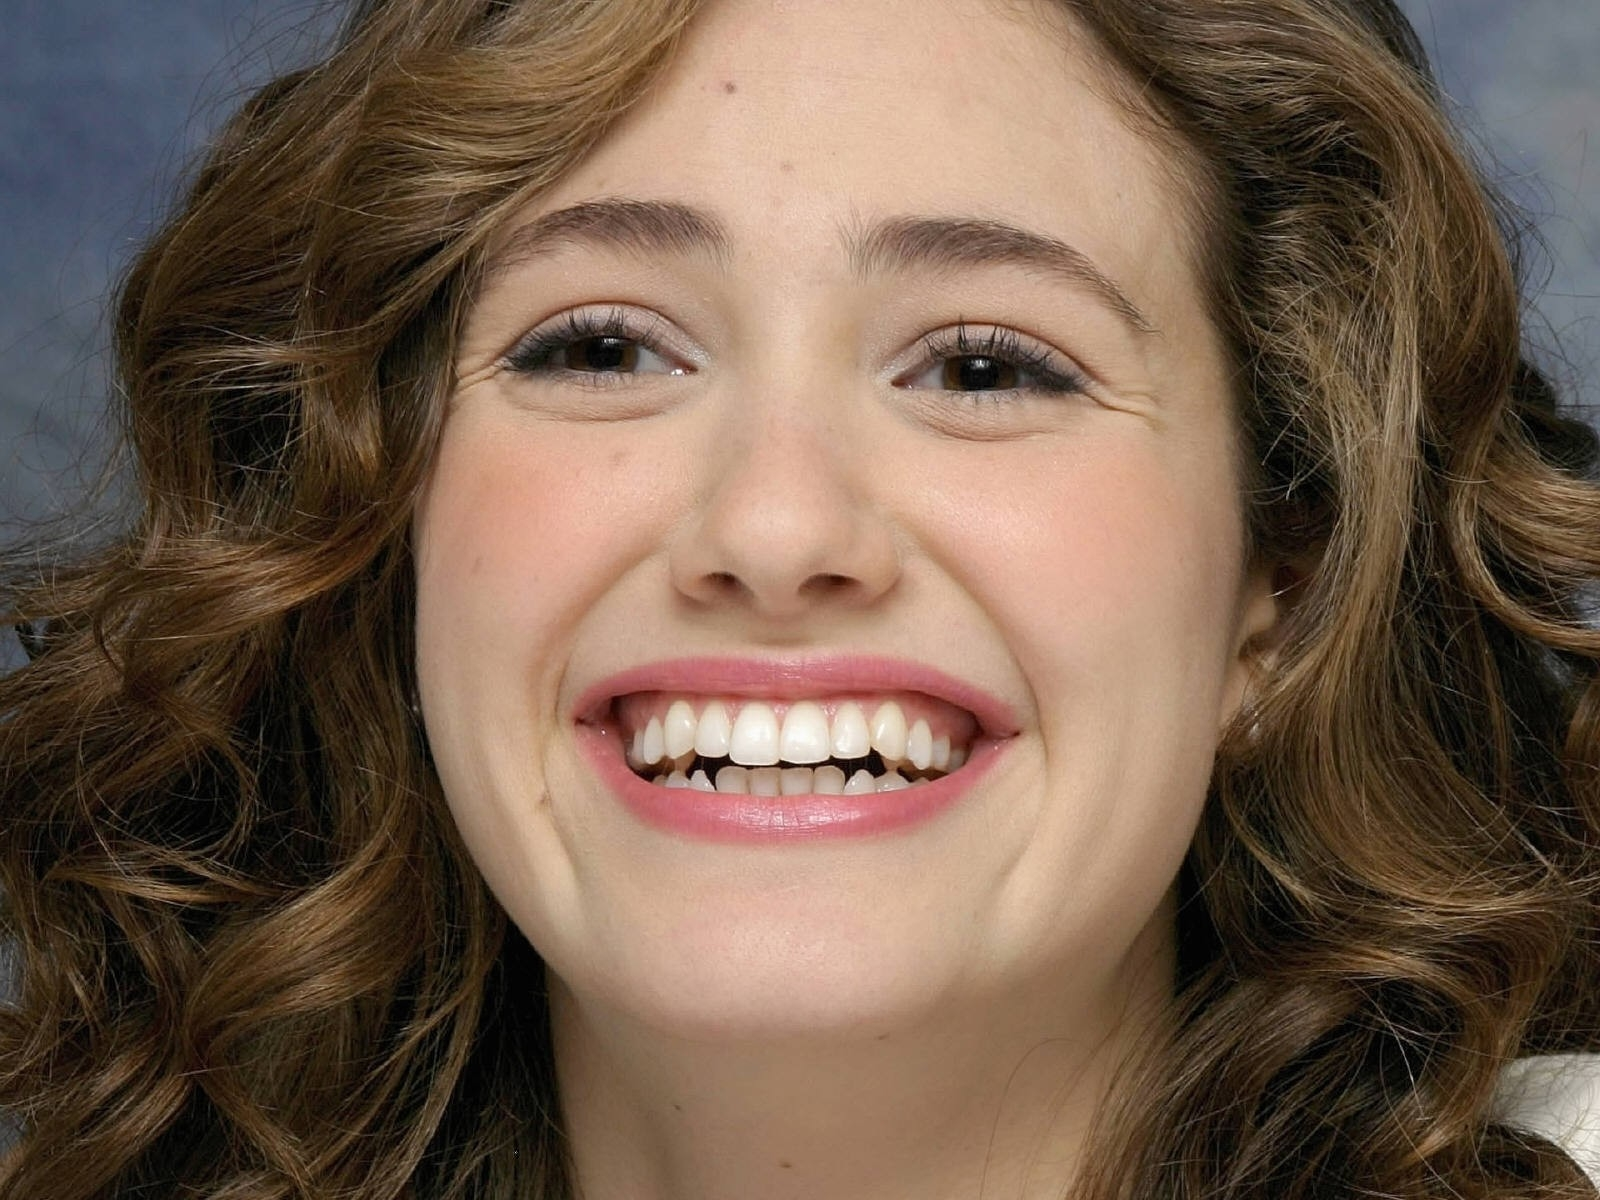 Wallpaper di Emmy Rossum